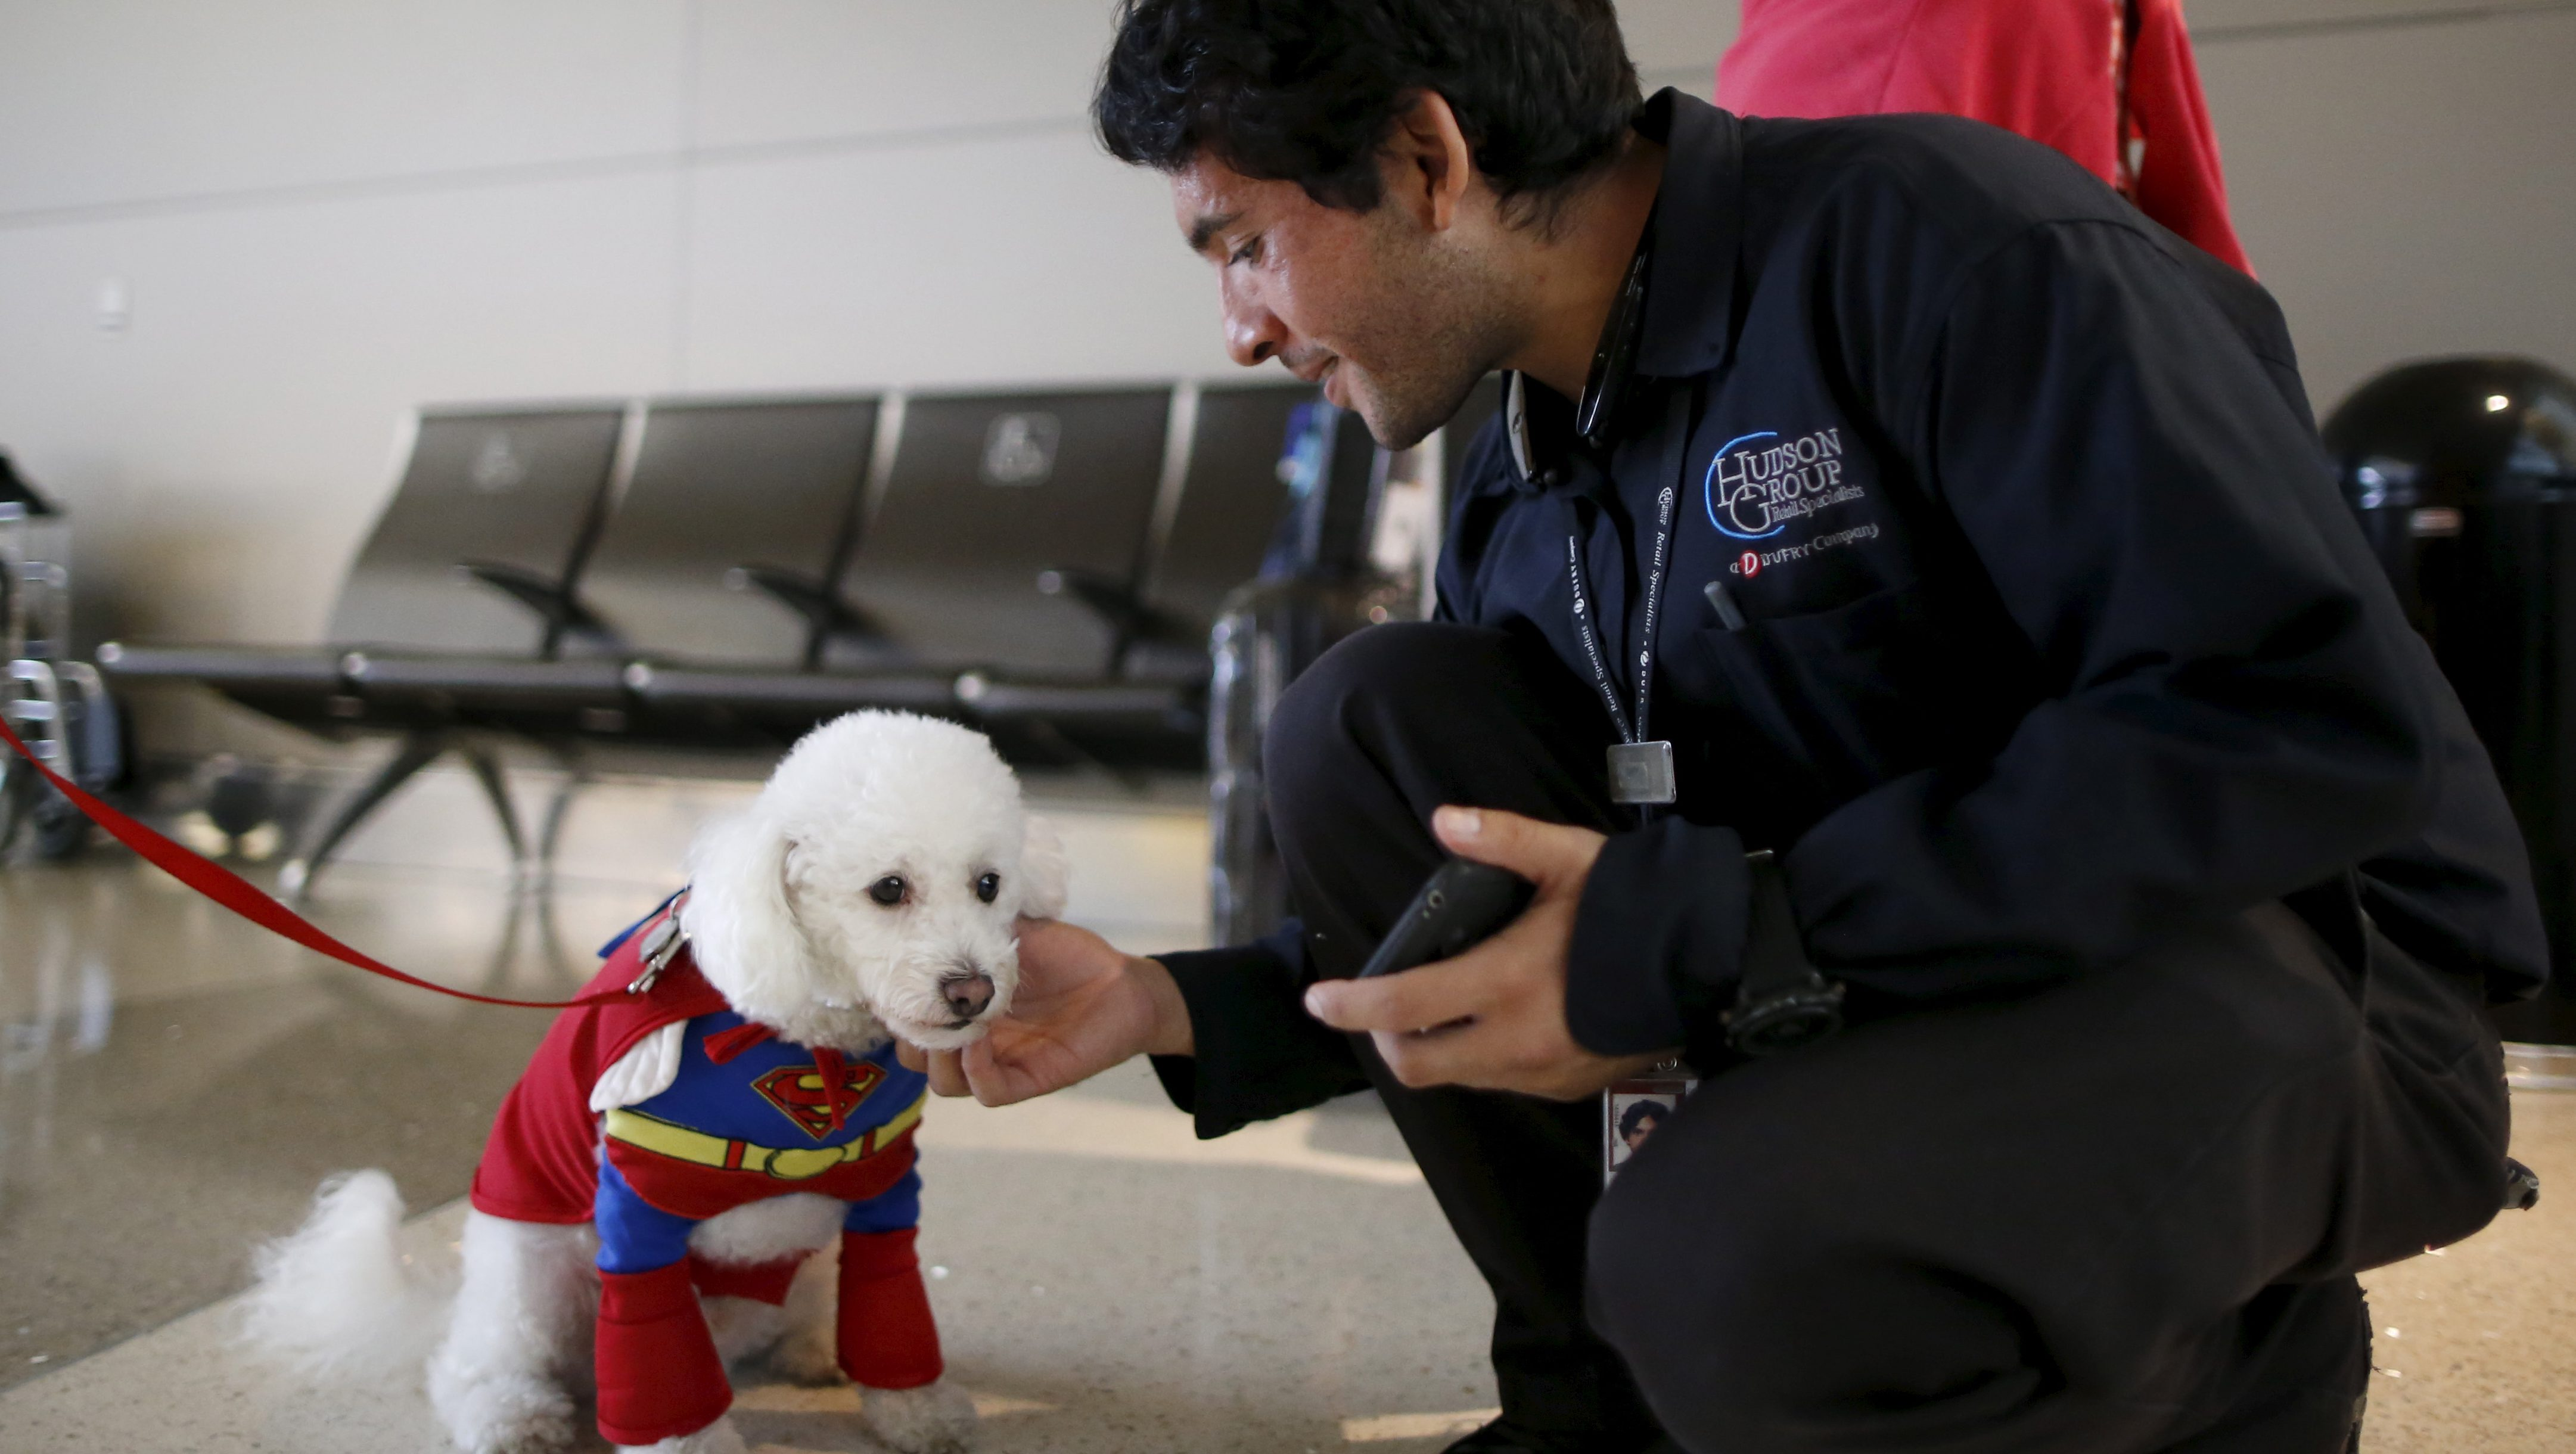 A therapy dog wears a Superman Halloween costume as part of a program to de-stress passengers at the international boarding gate area of LAX airport in Los Angeles, California, United States, October 27, 2015. REUTERS/Lucy Nicholson - GF20000035658